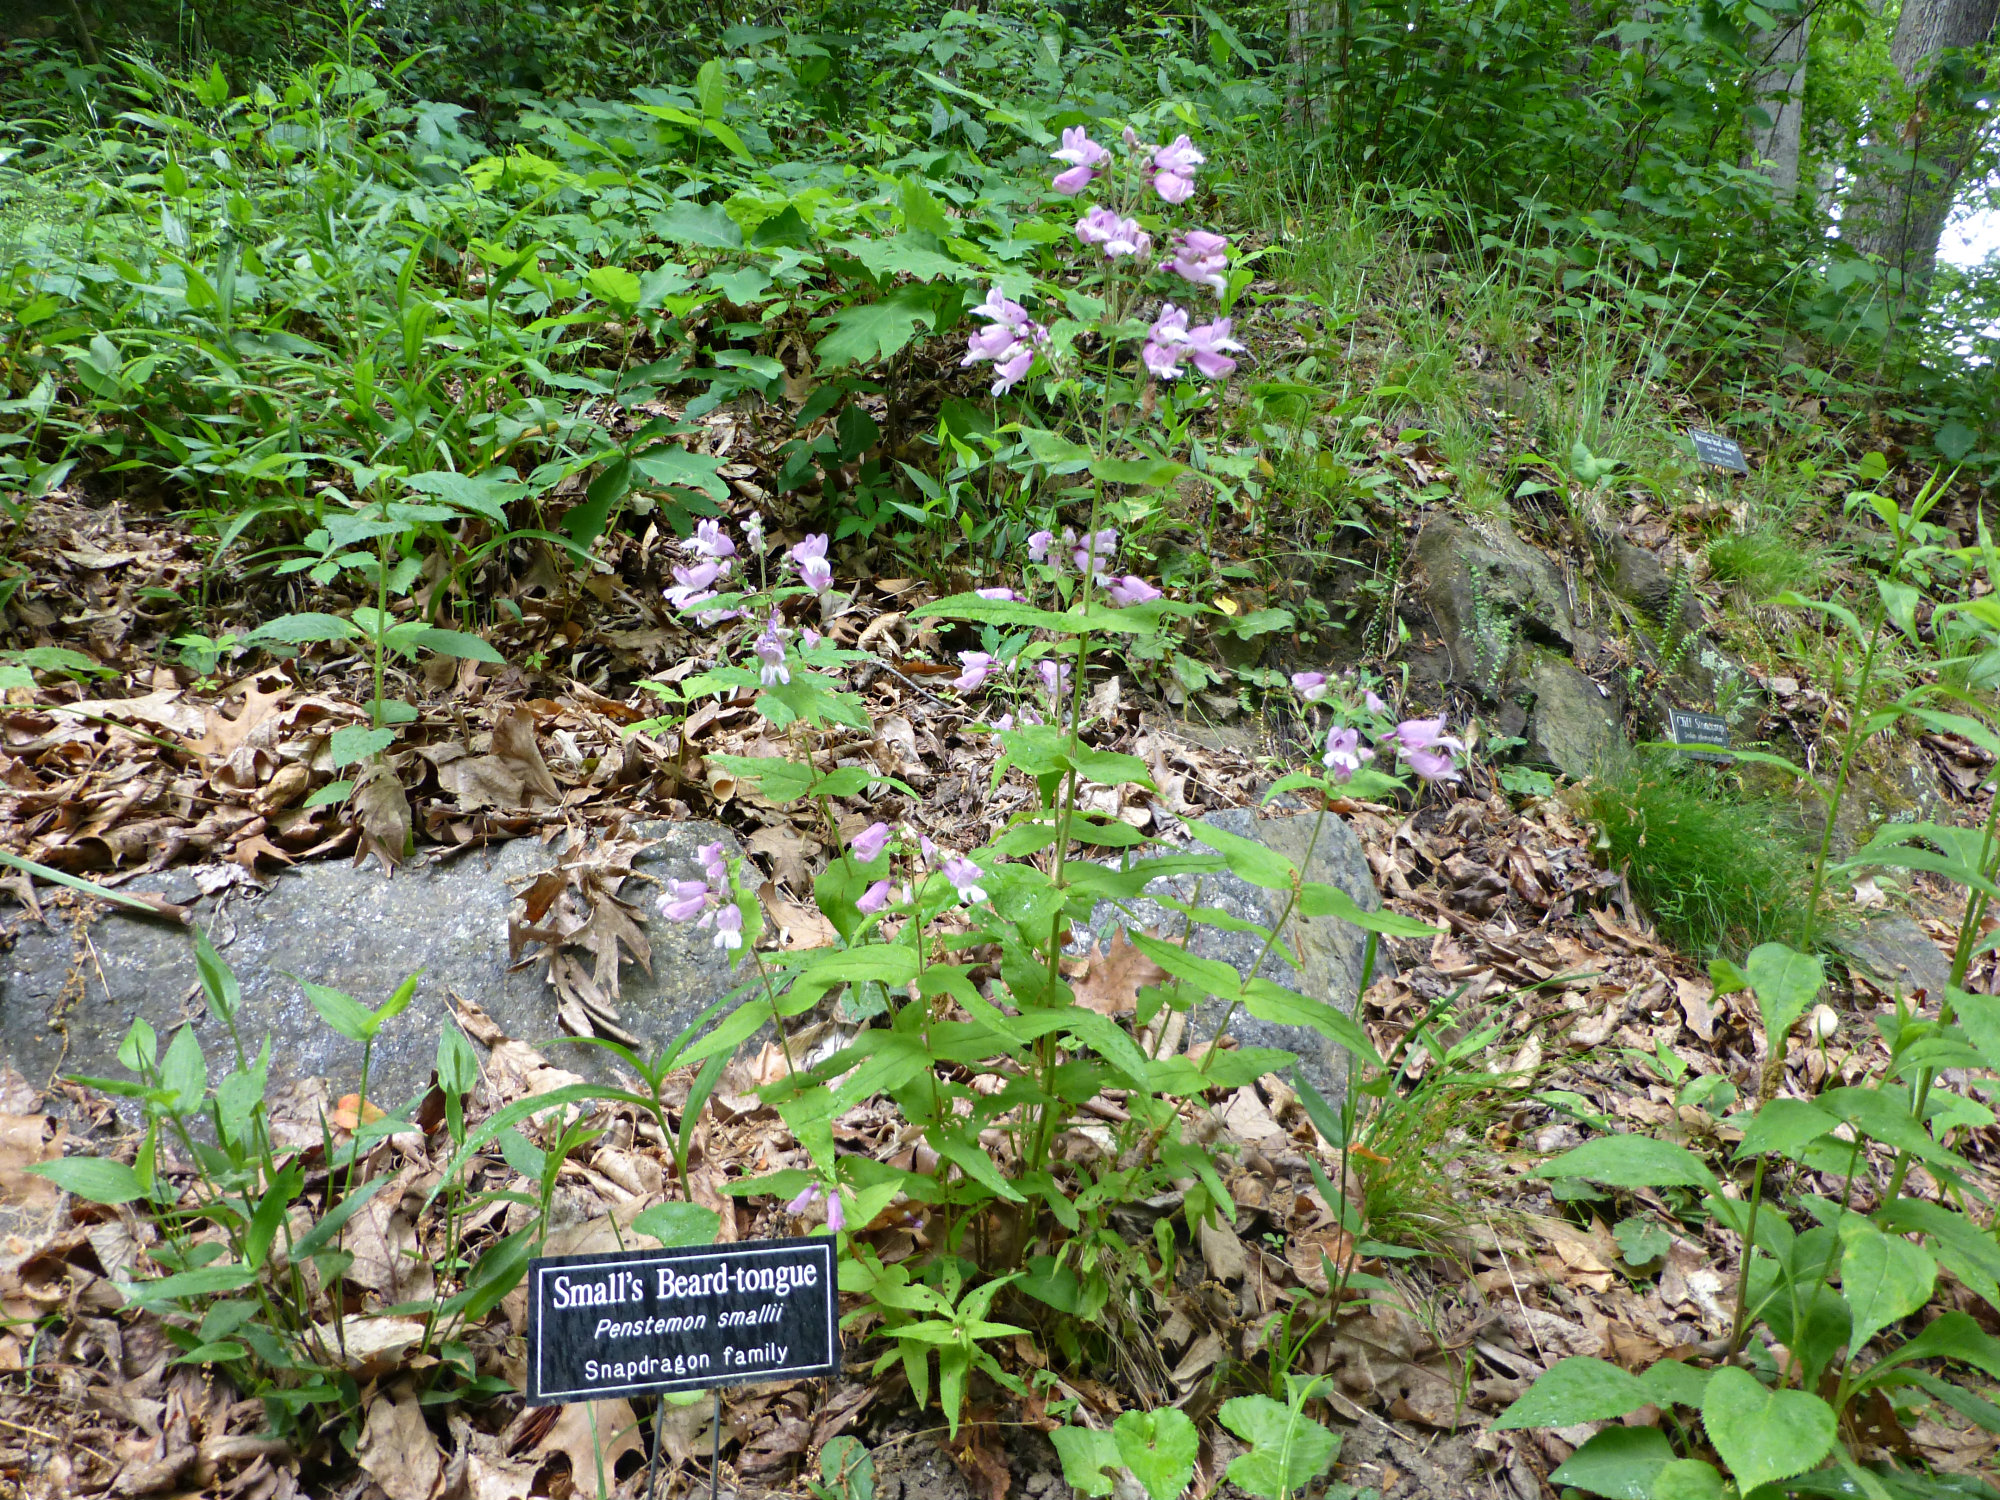 Sign saying Small's Beard-tongue next to plant with tall stems and purple flowers near some stones in the woods